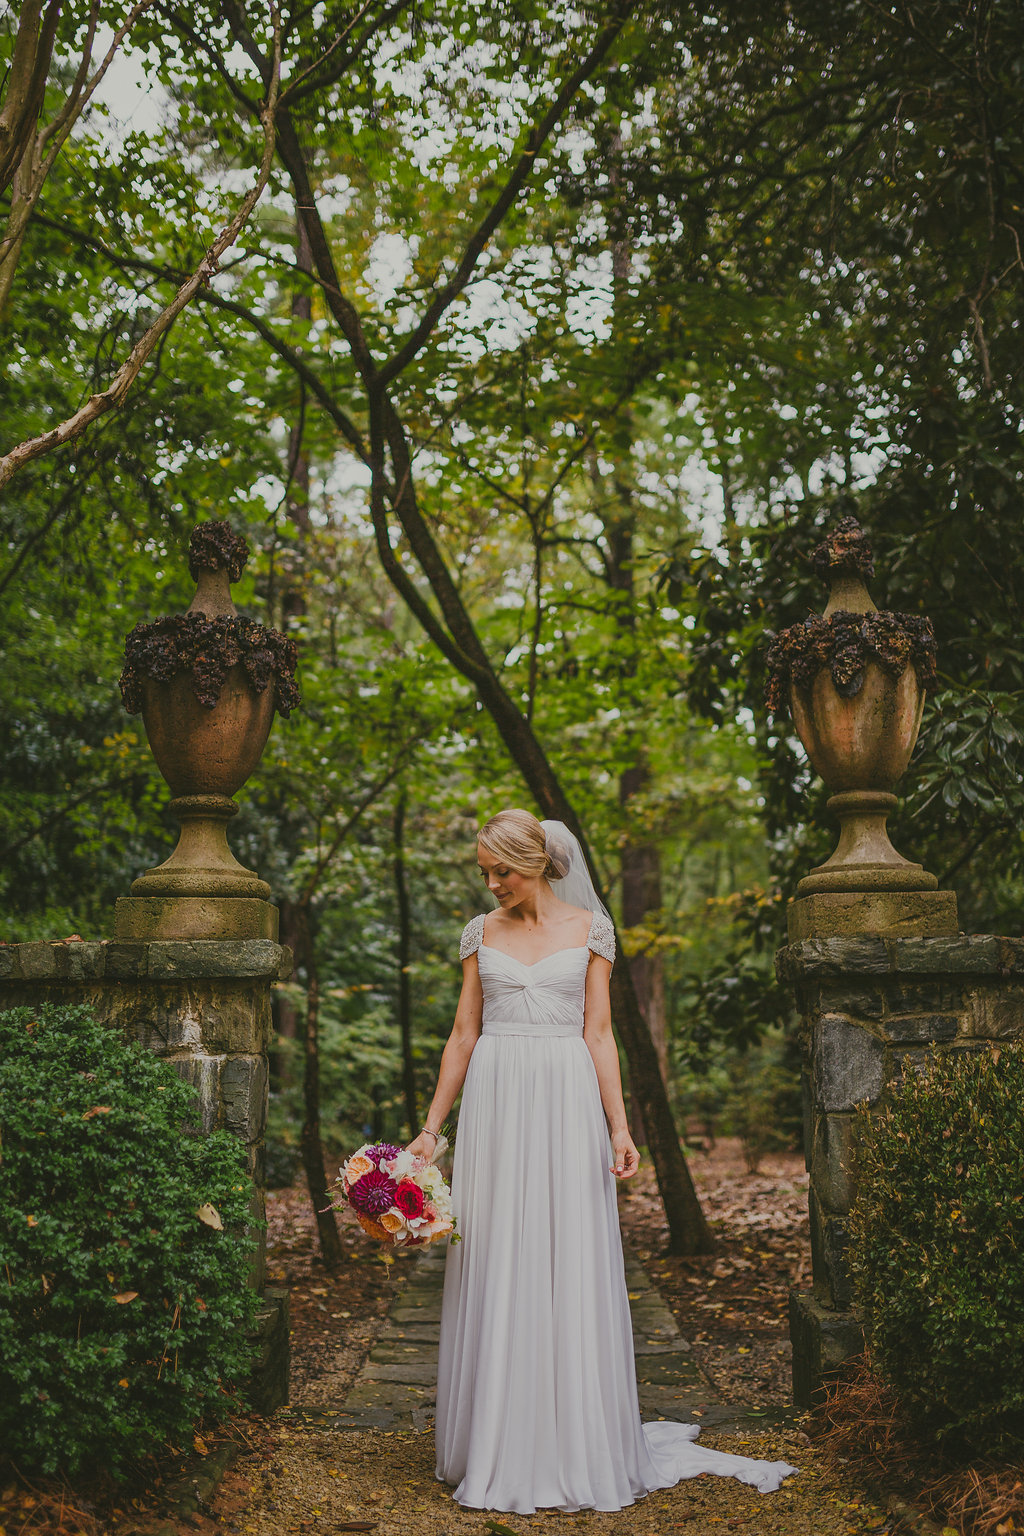 Kathleen Morris Almost Wed Atlanta Wedding Planner Twin Hearts photography-4.JPG